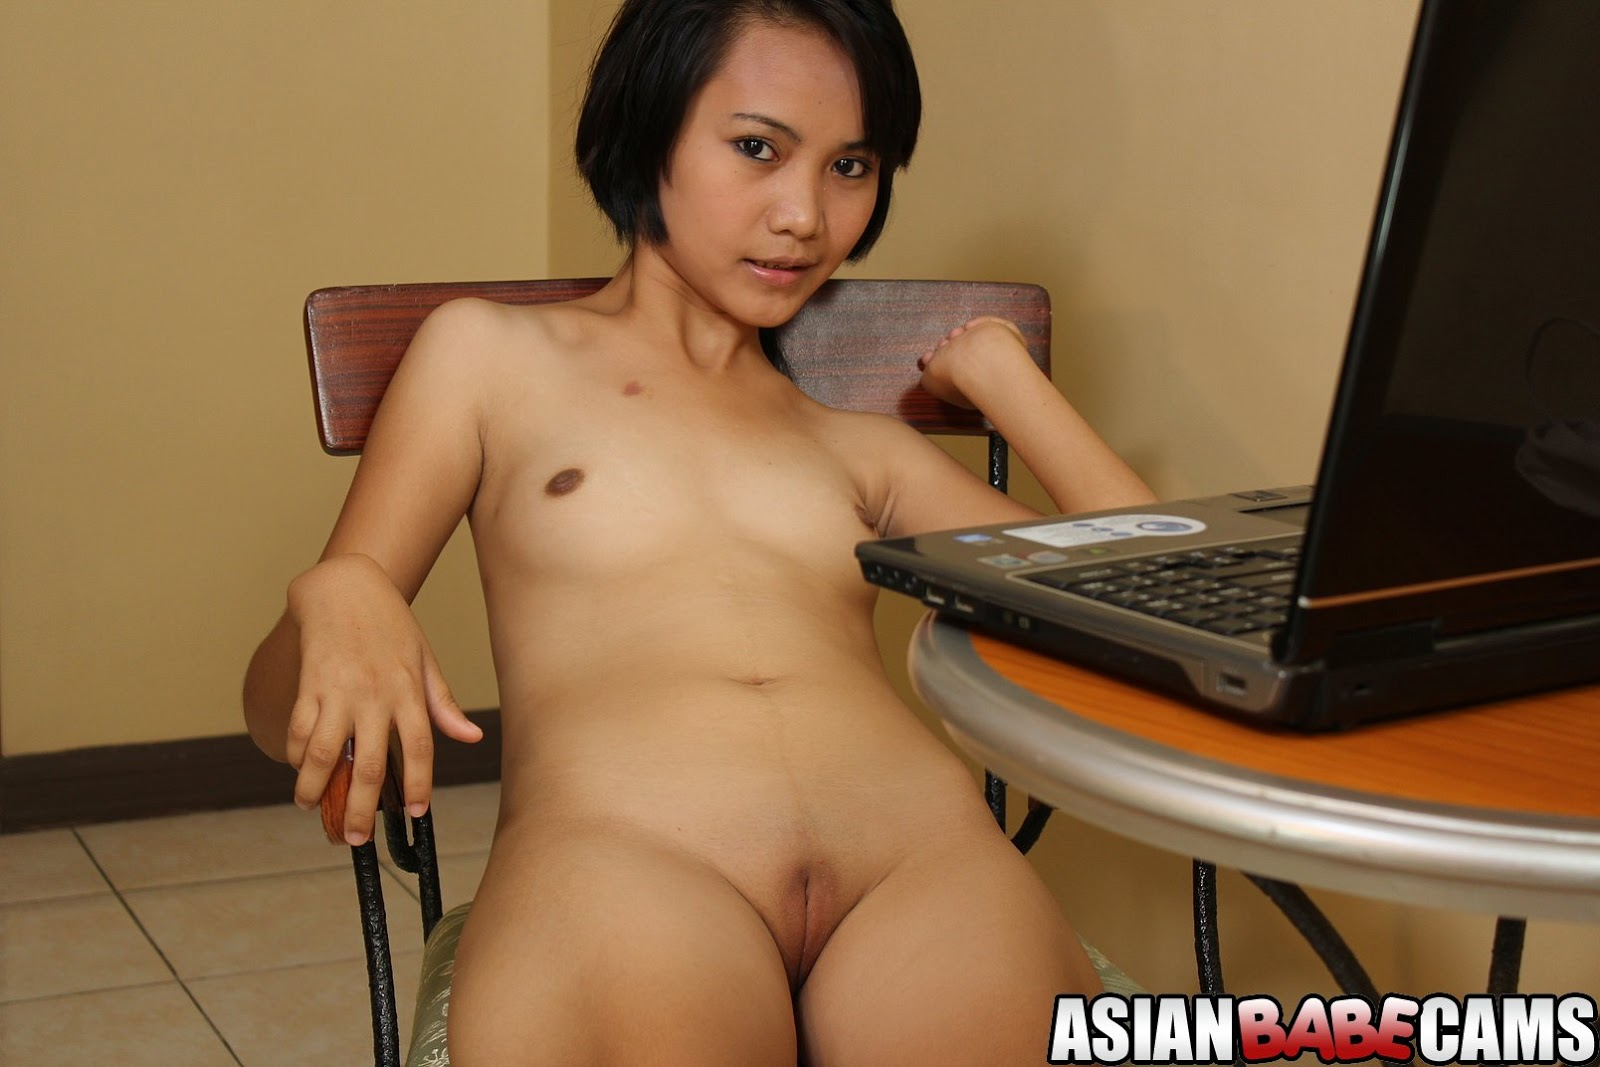 Variants.... Thai girl naked pic something